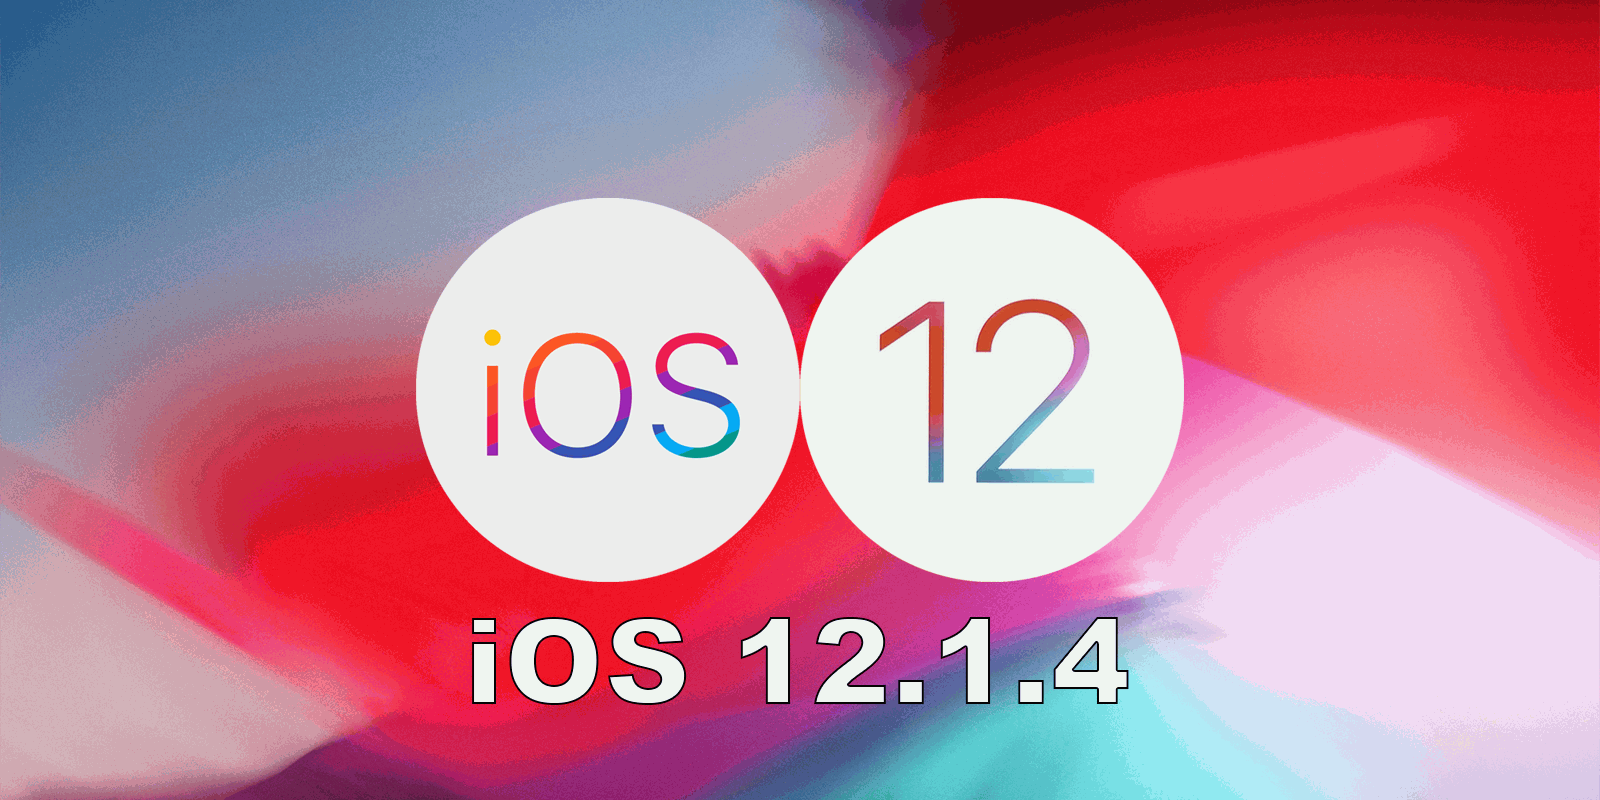 iOS 12 problems: how to fix issues in iOS 12.1.4 Update